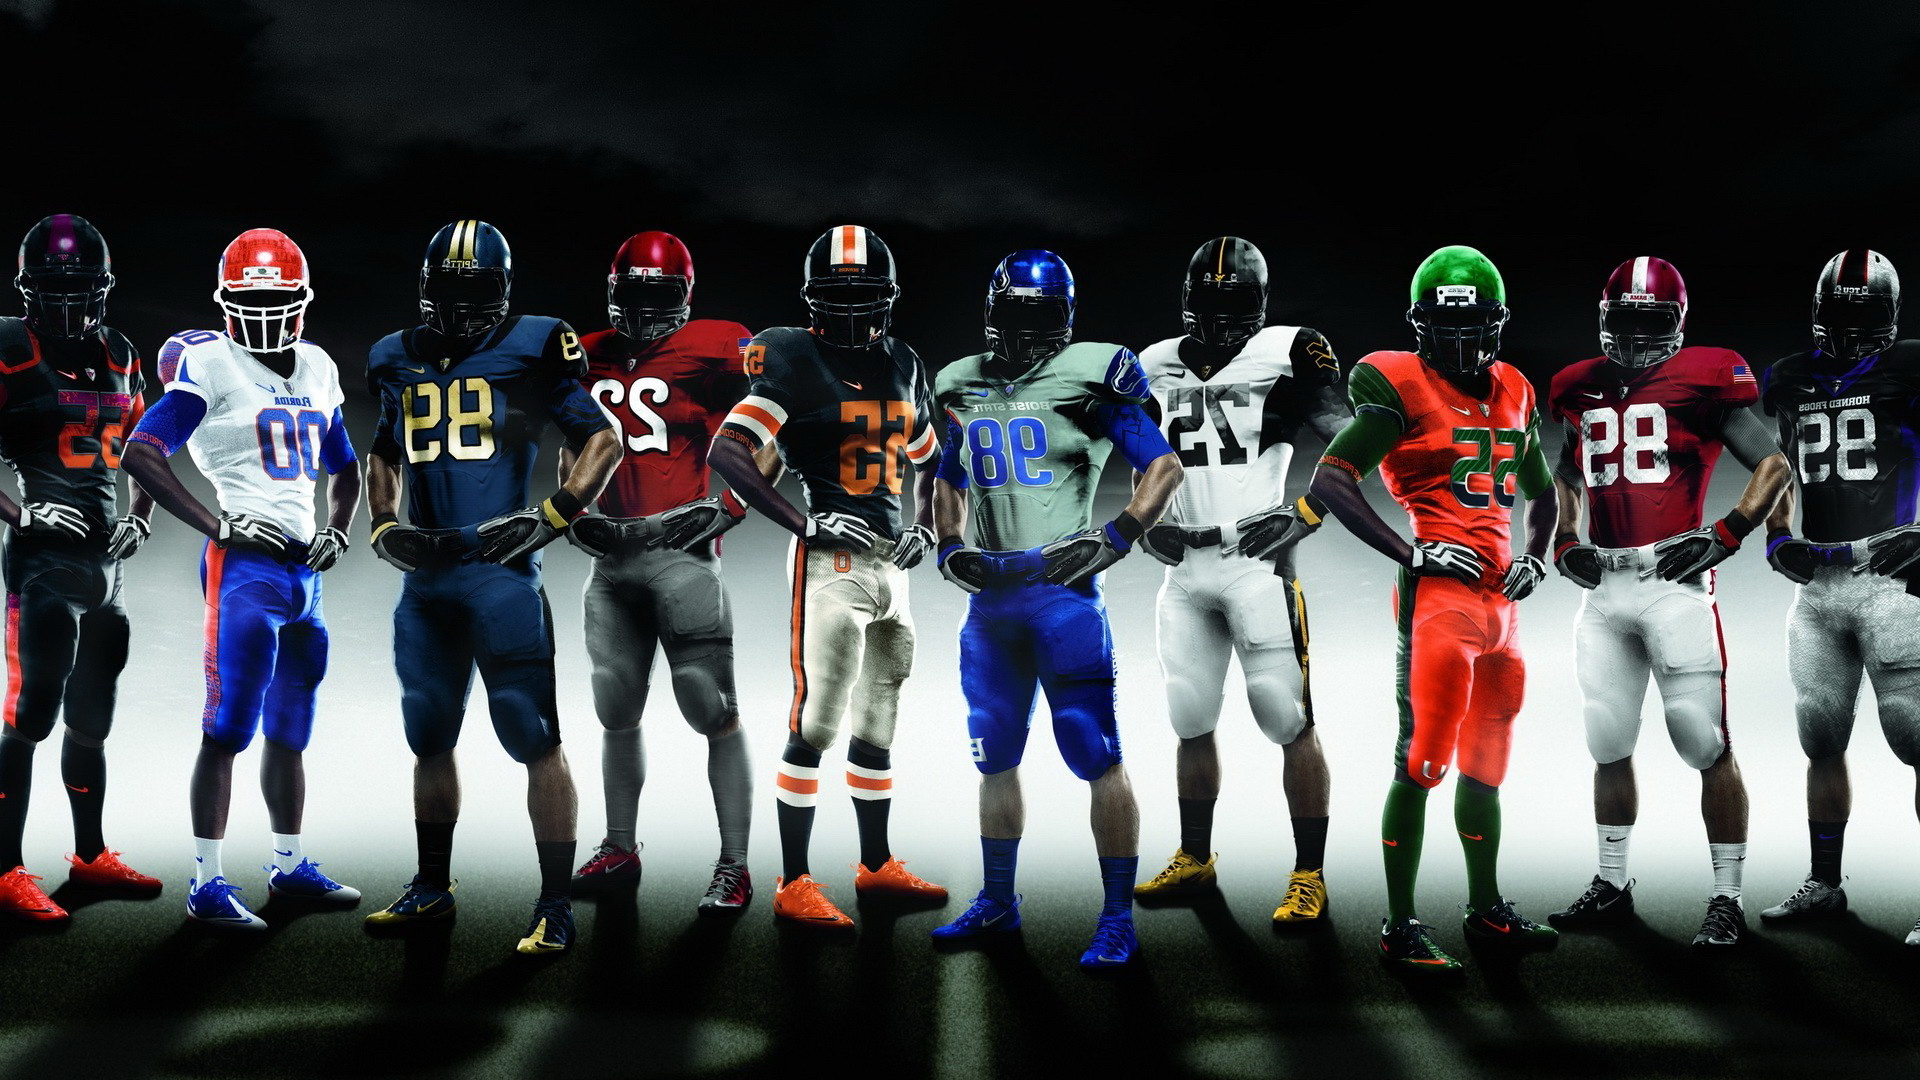 College Football Team Wallpapers Tags college football teams 1920x1080